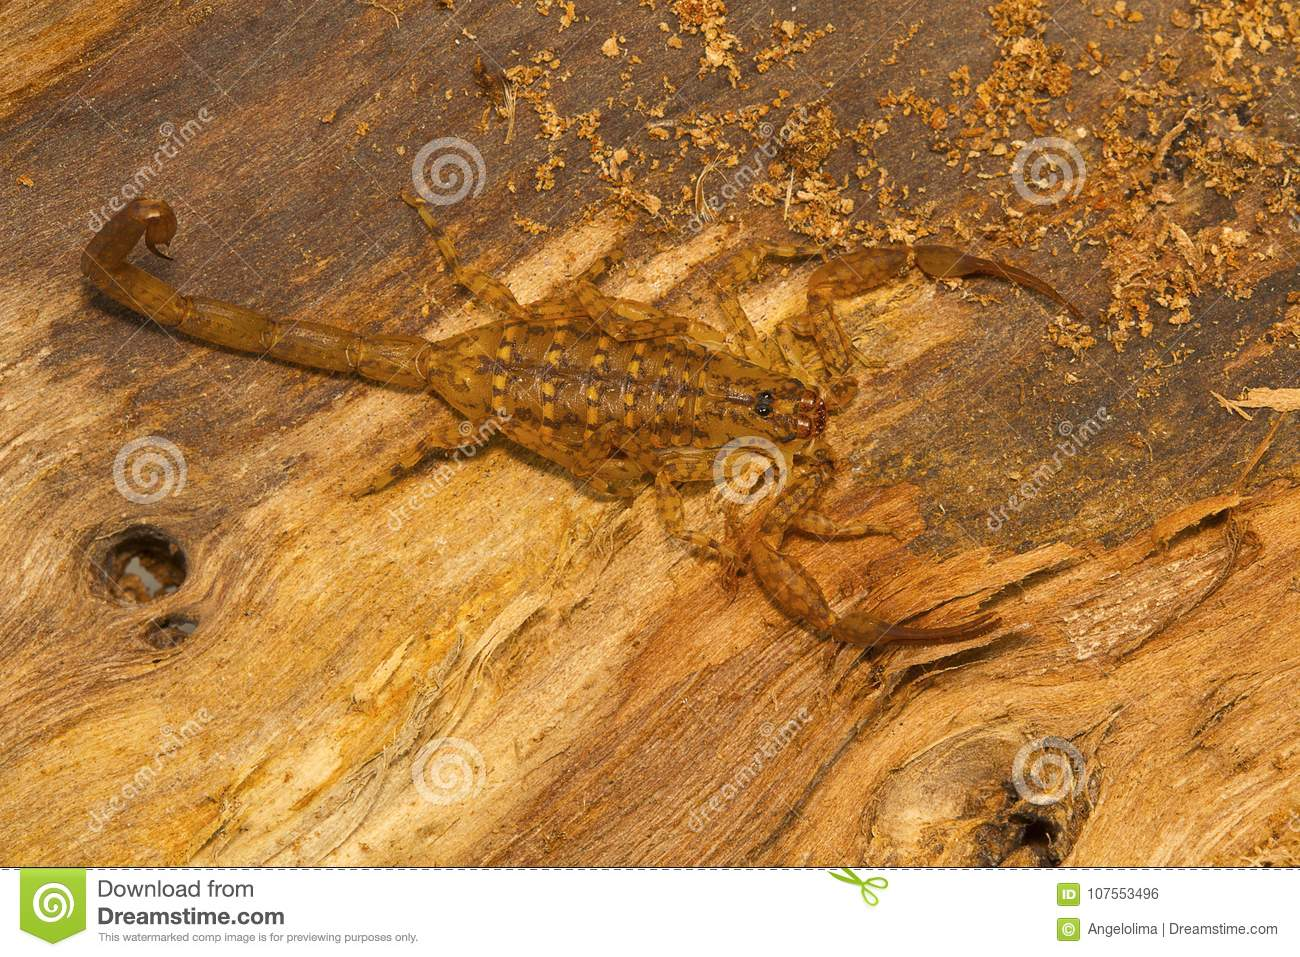 Bark Scorpion, Isometrus Vittatus Which Bears A Long